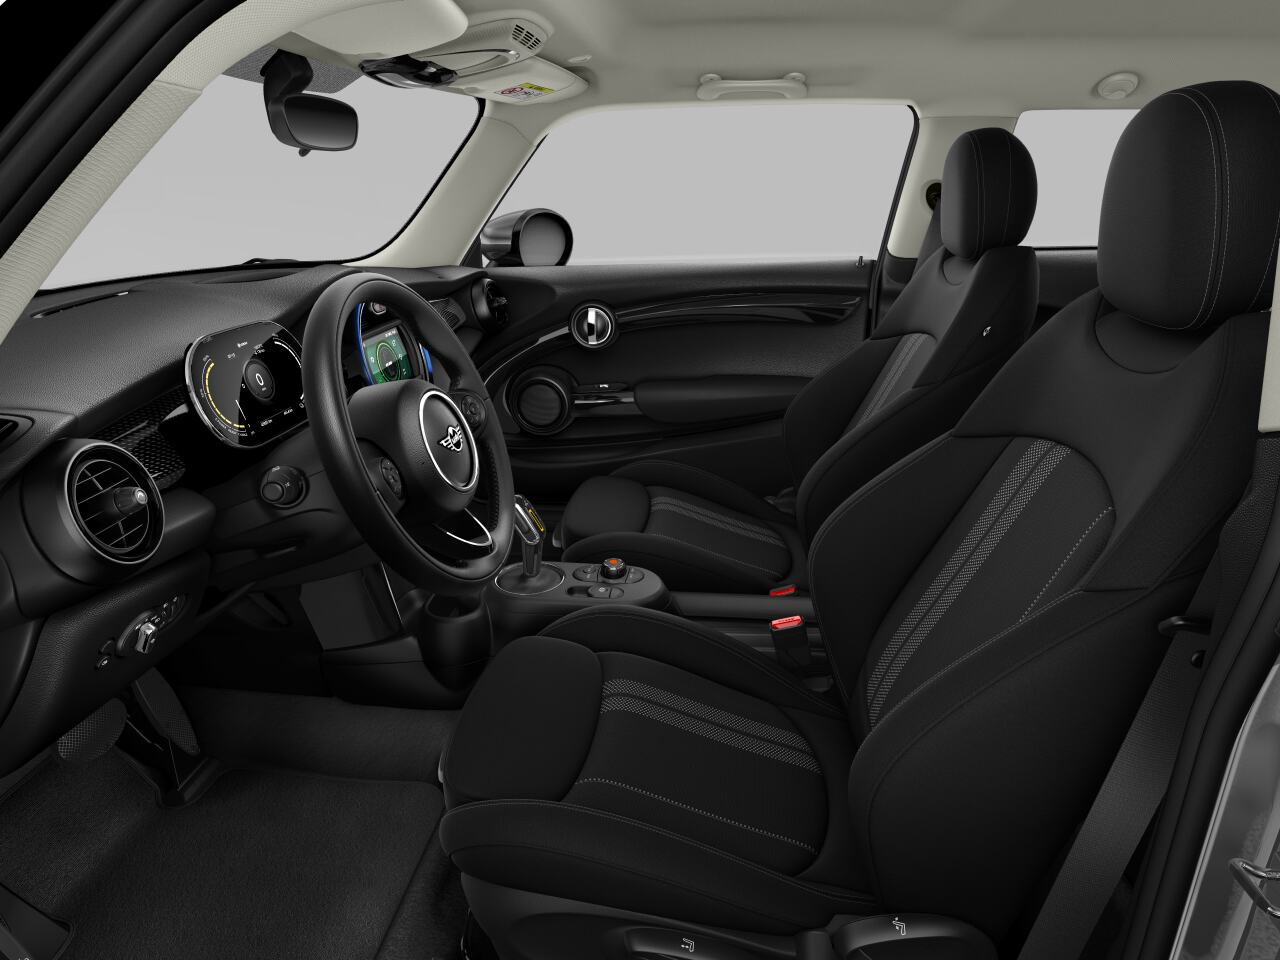 Mini electric – Package S – interior view - driver's side